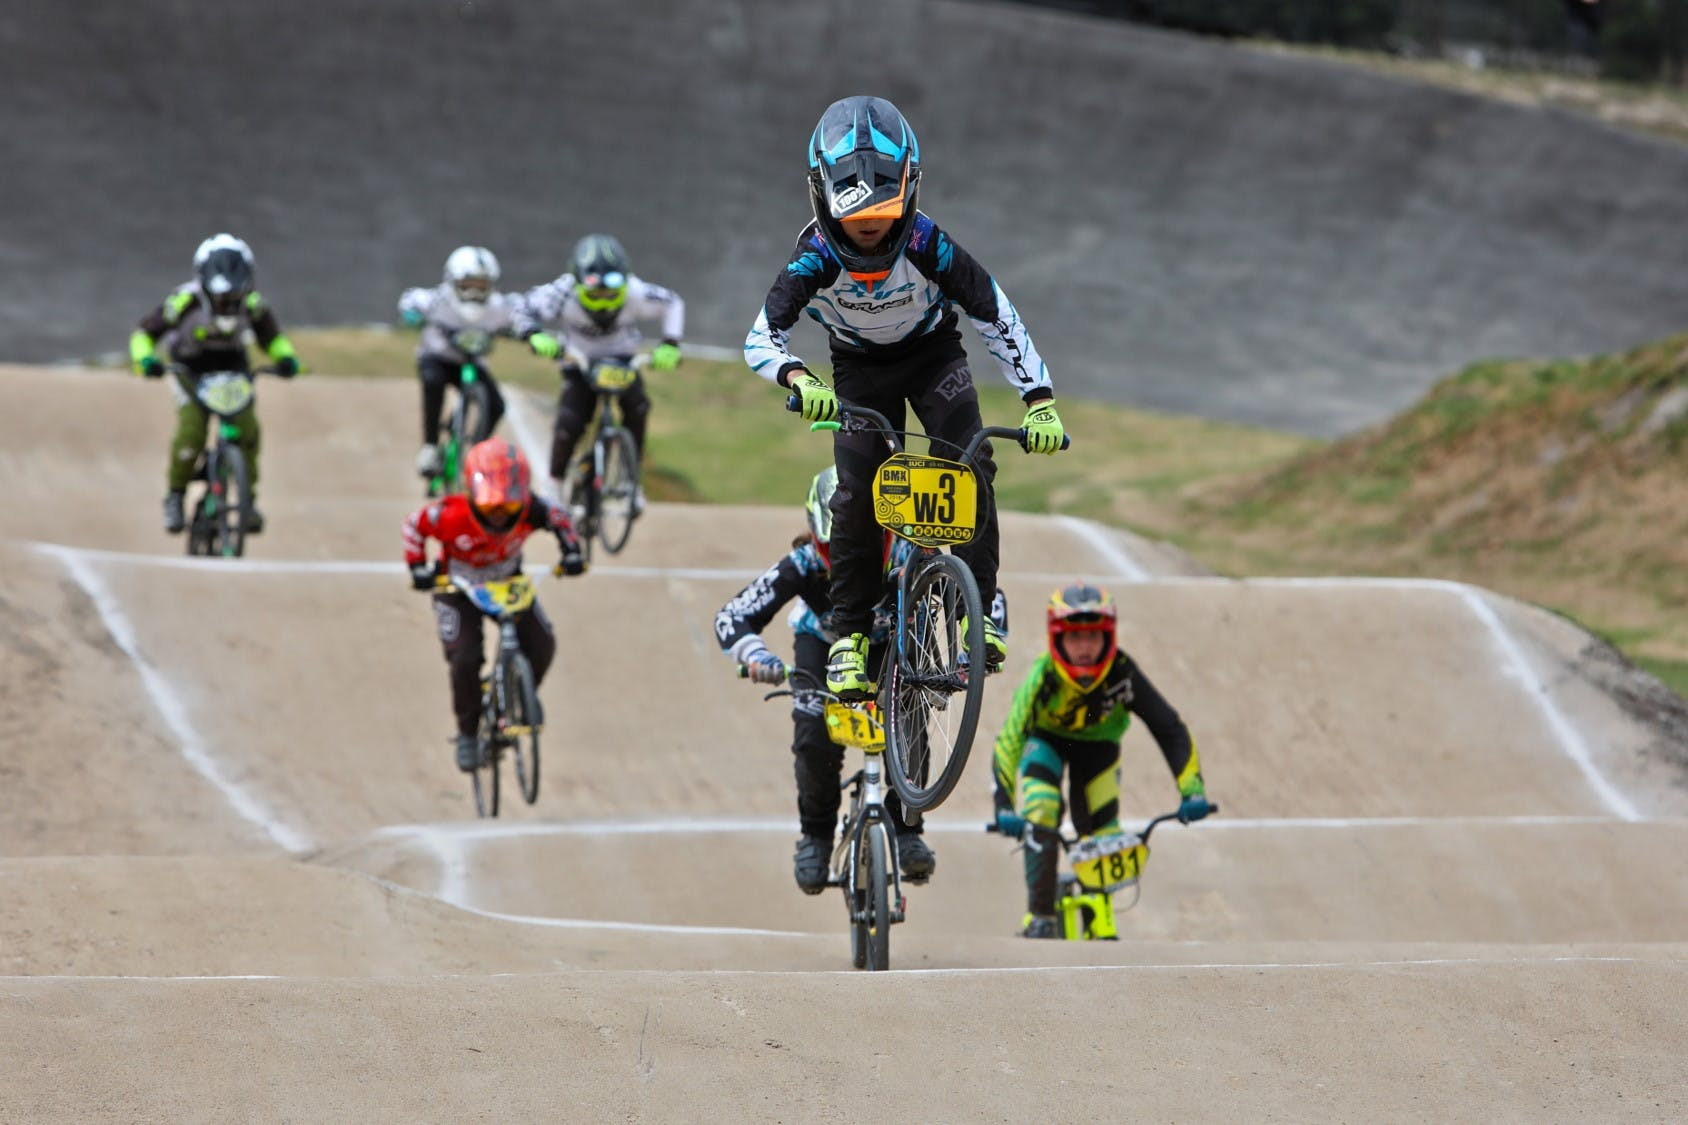 In Action: Regional BMX Racing Track